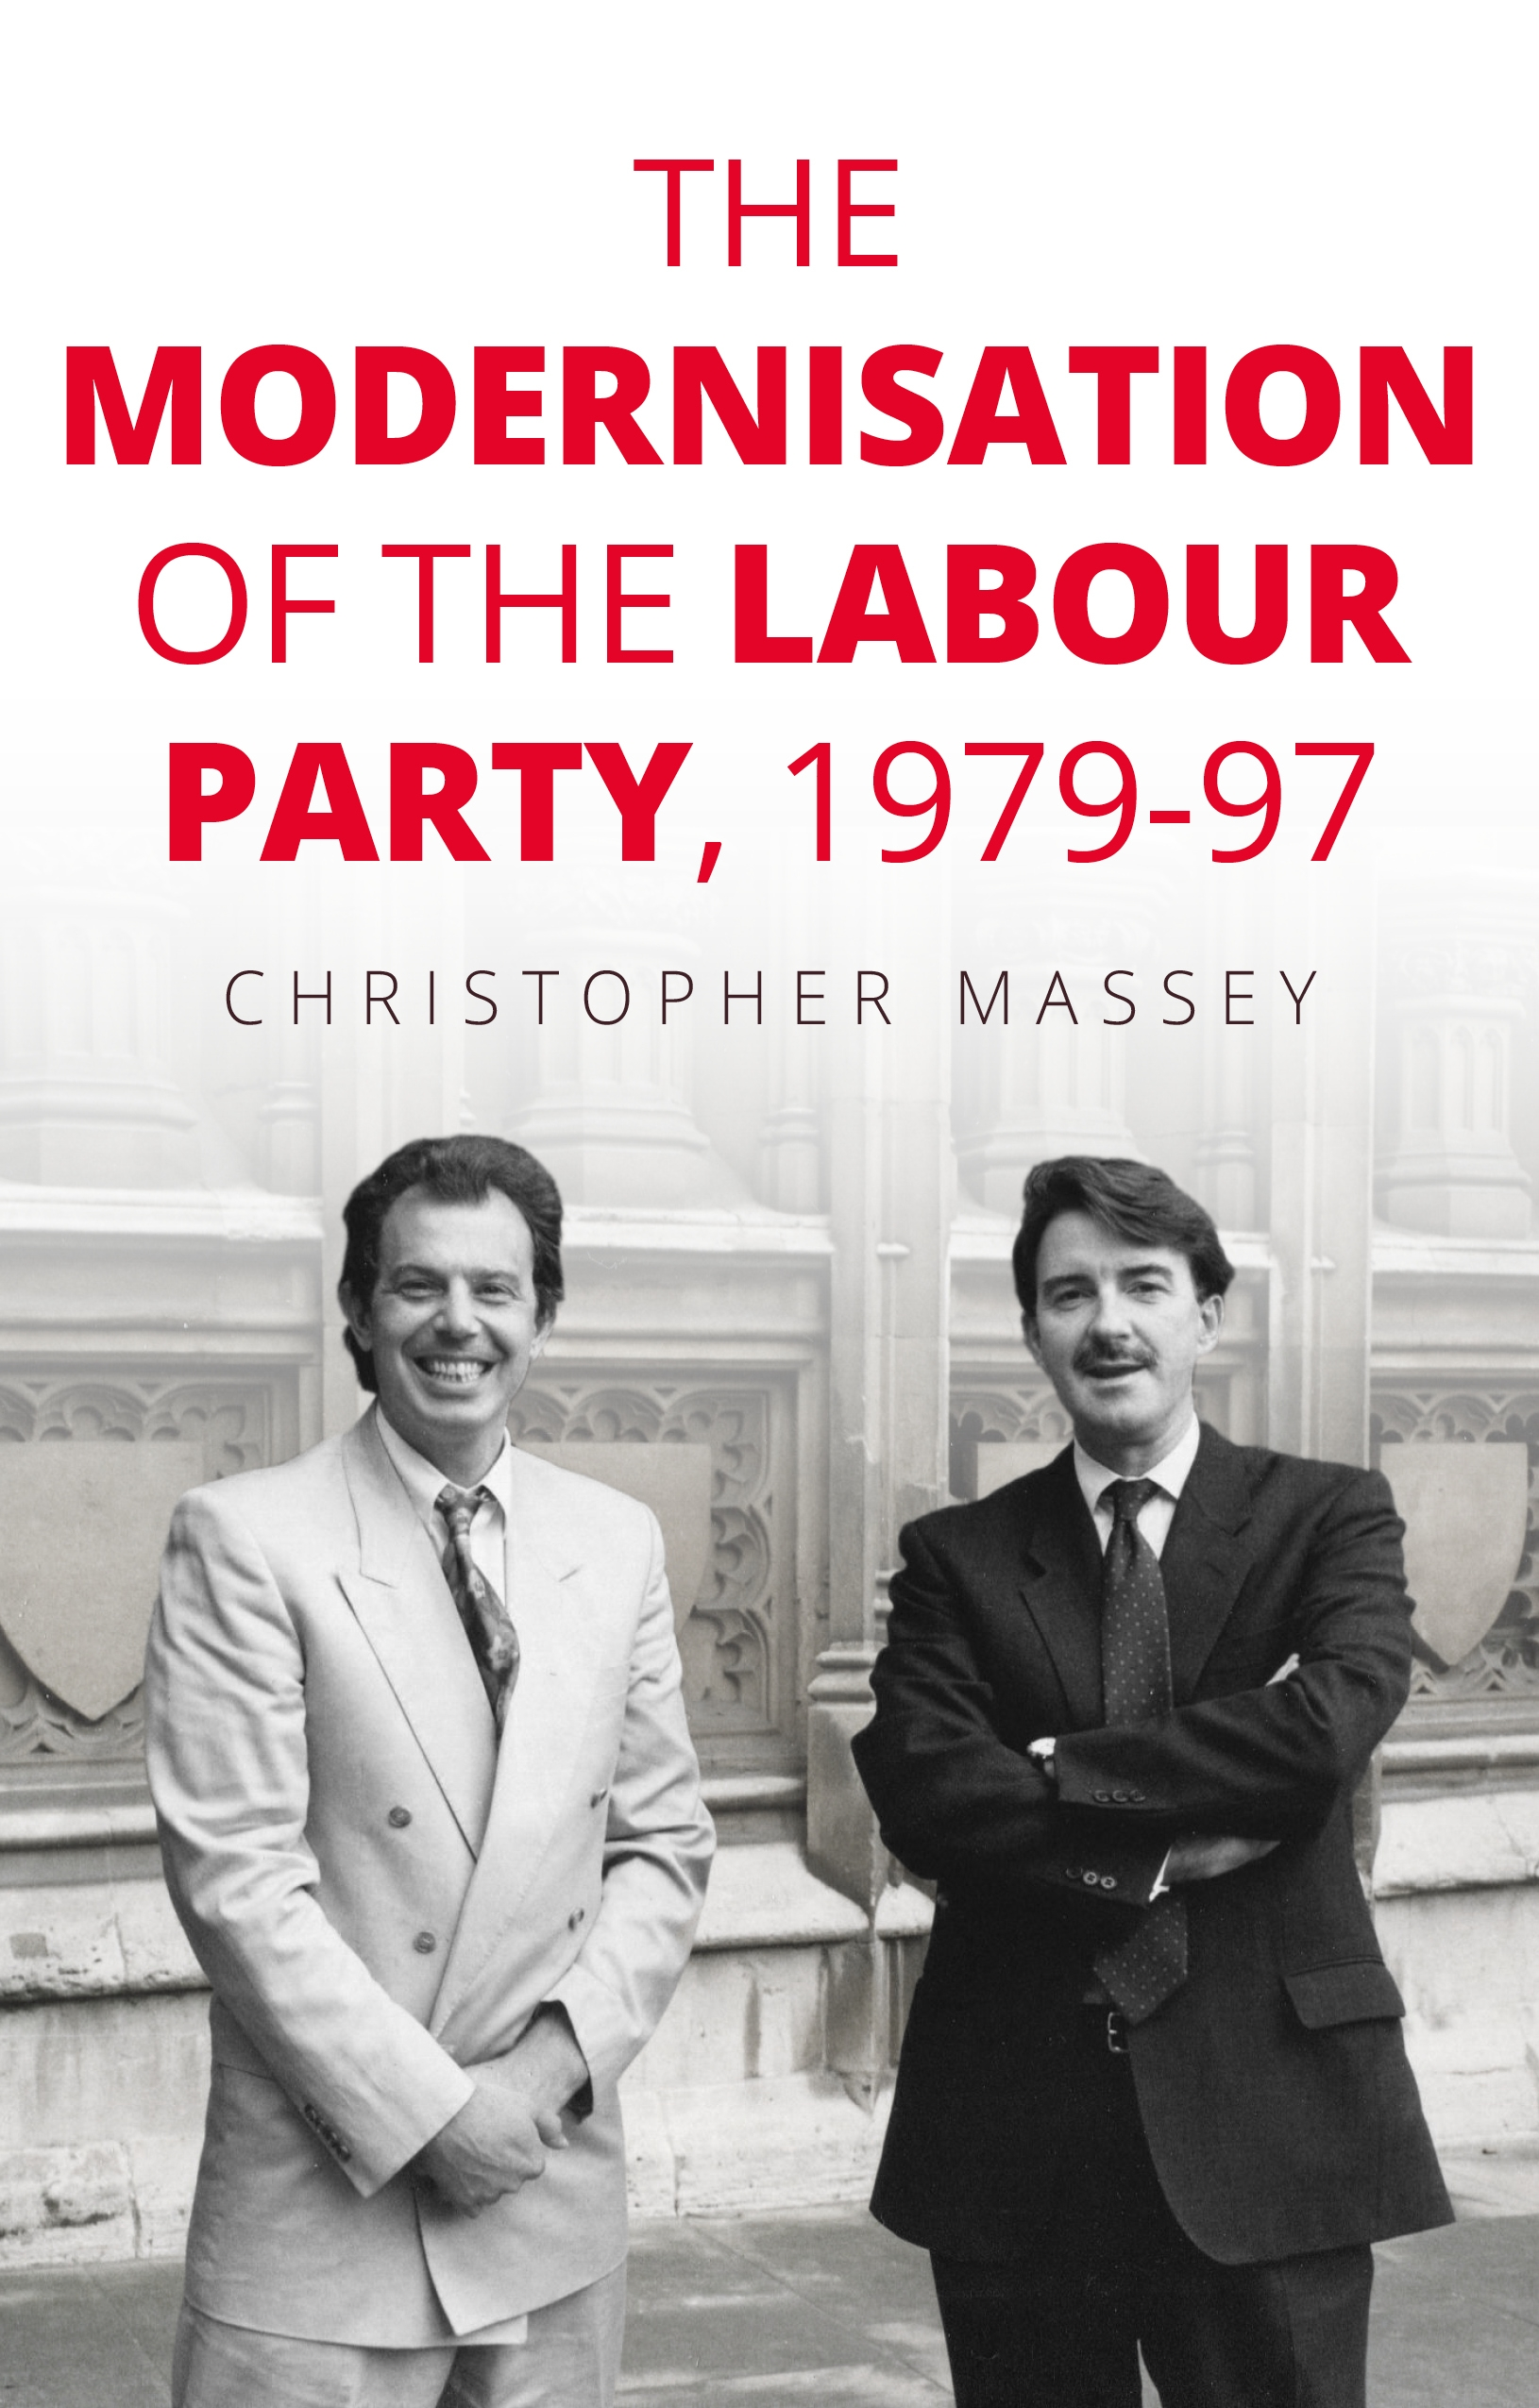 The modernisation of the Labour Party (1979-97) and some early parallels with Keir Starmer's leadership